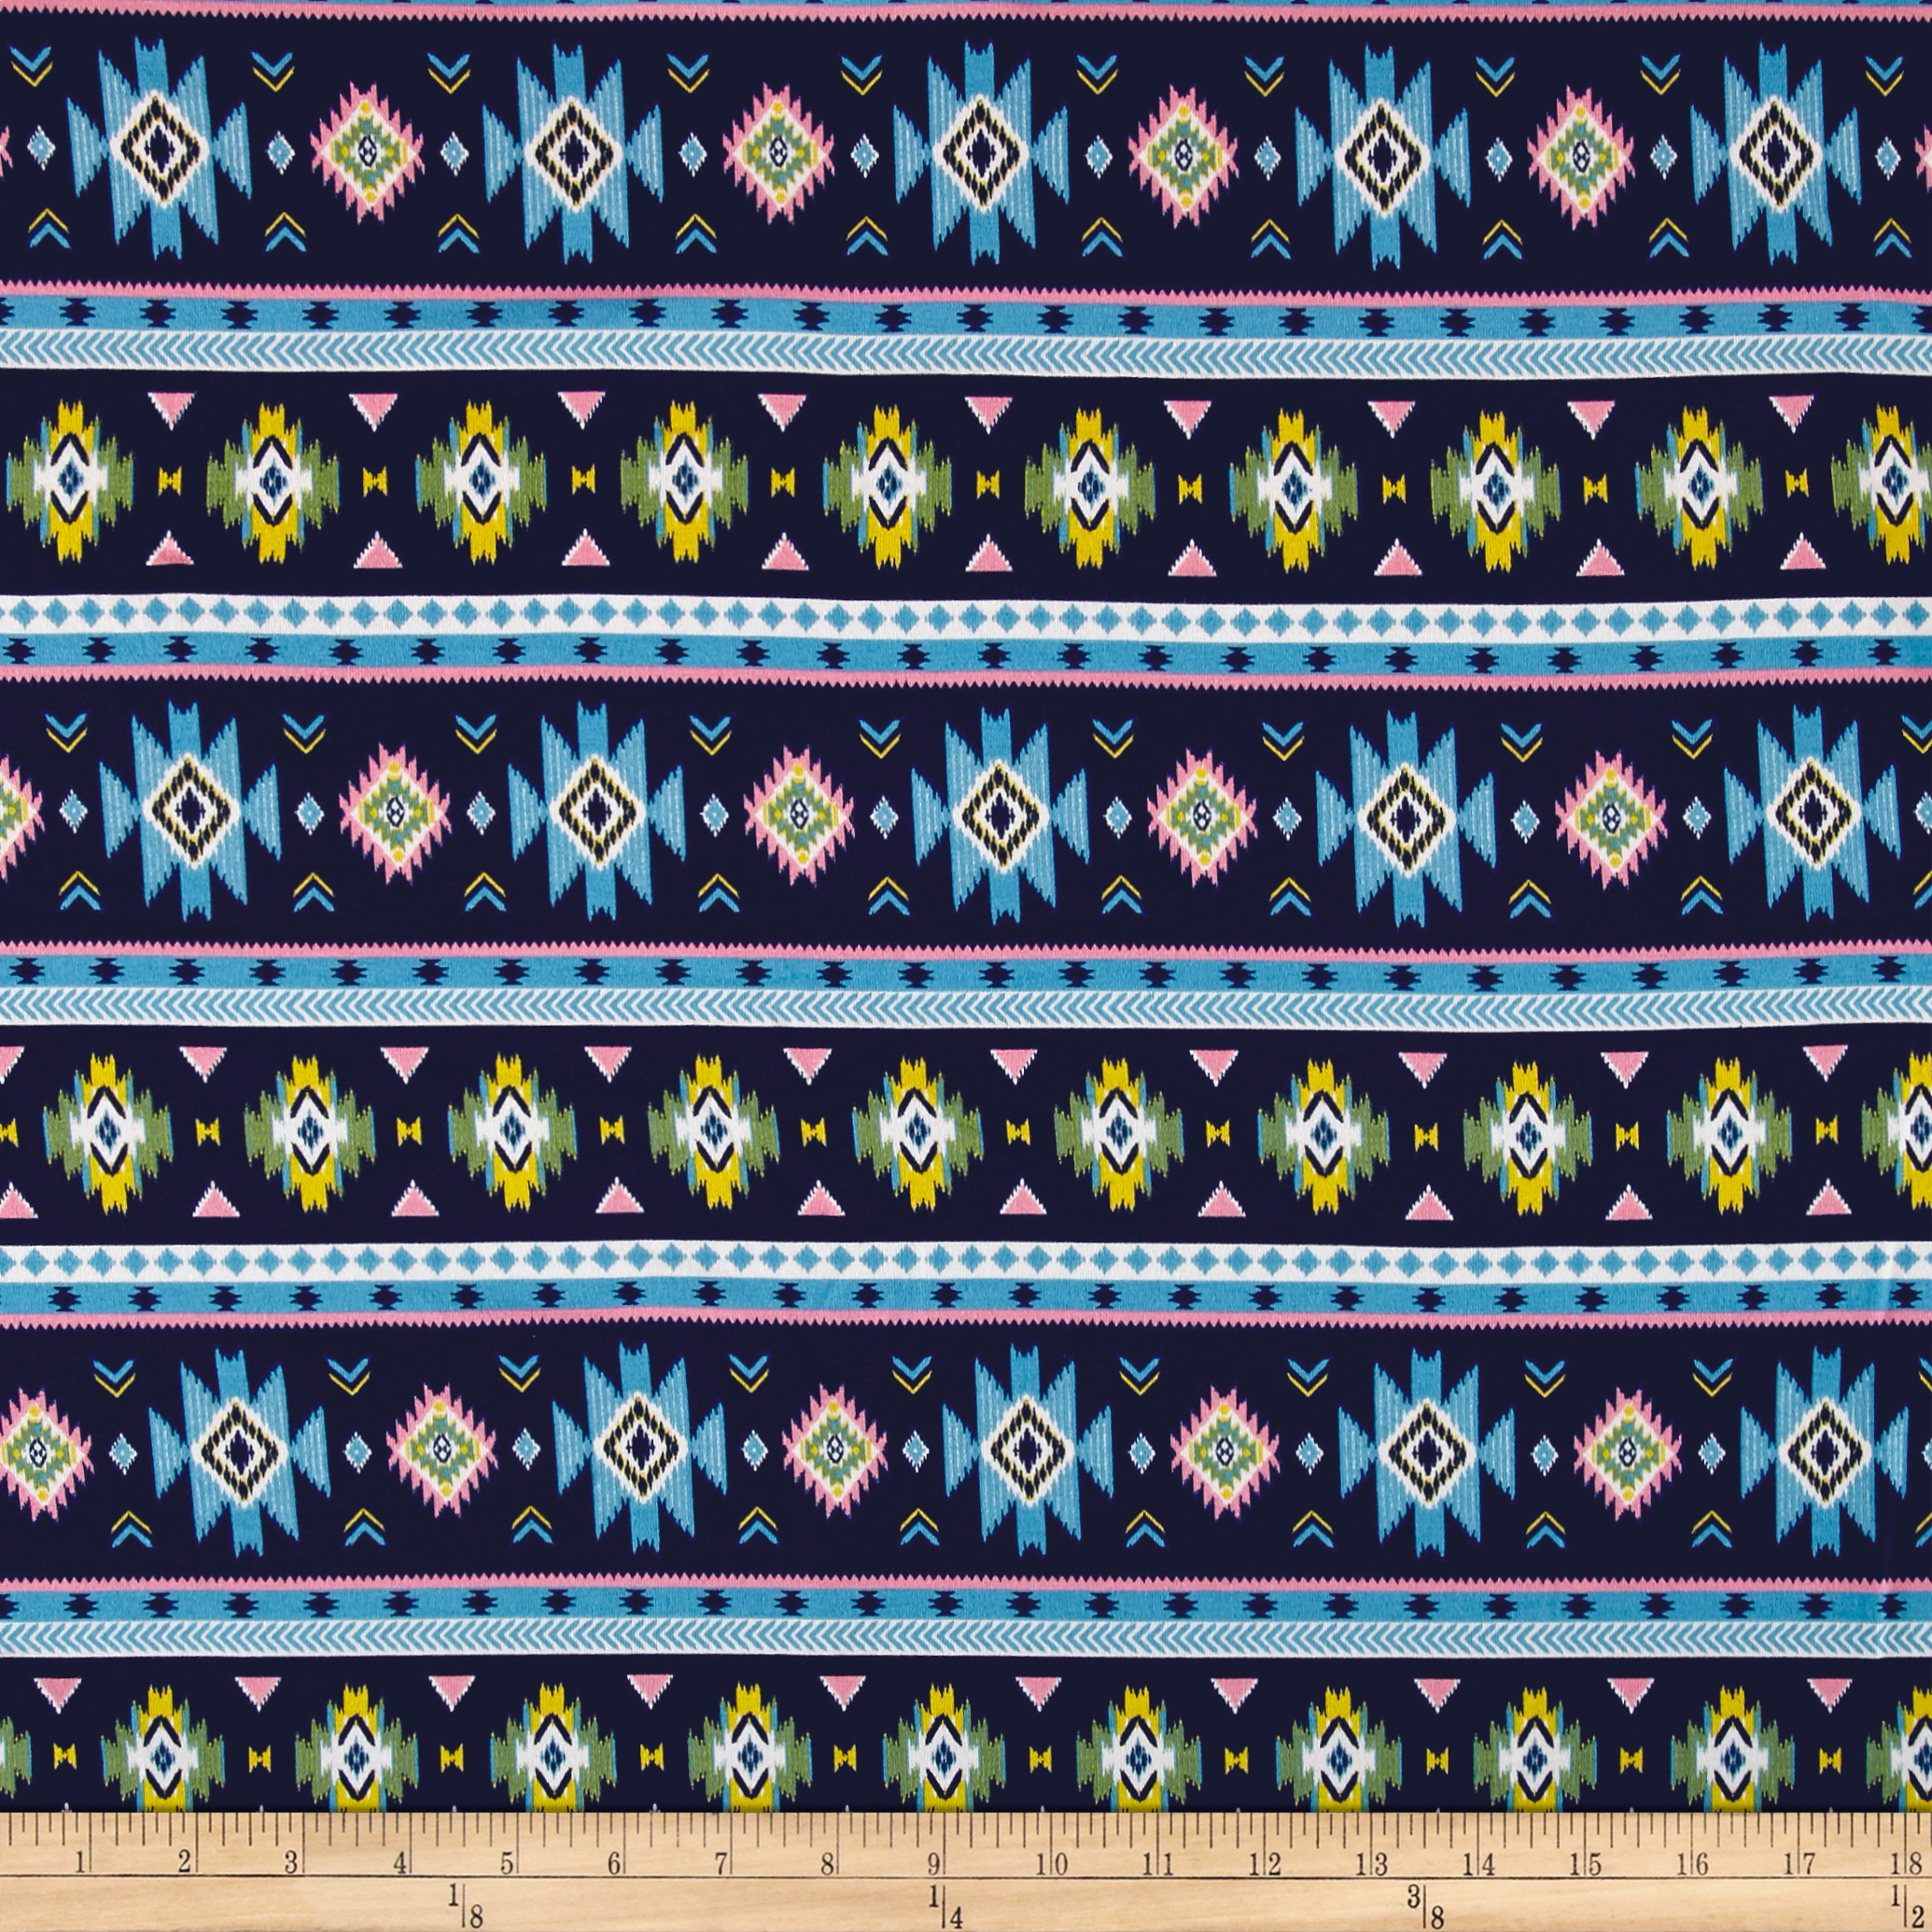 Fabric Merchants Cotton Spandex Jersey Knit Aztec Inspired Blue/Multi